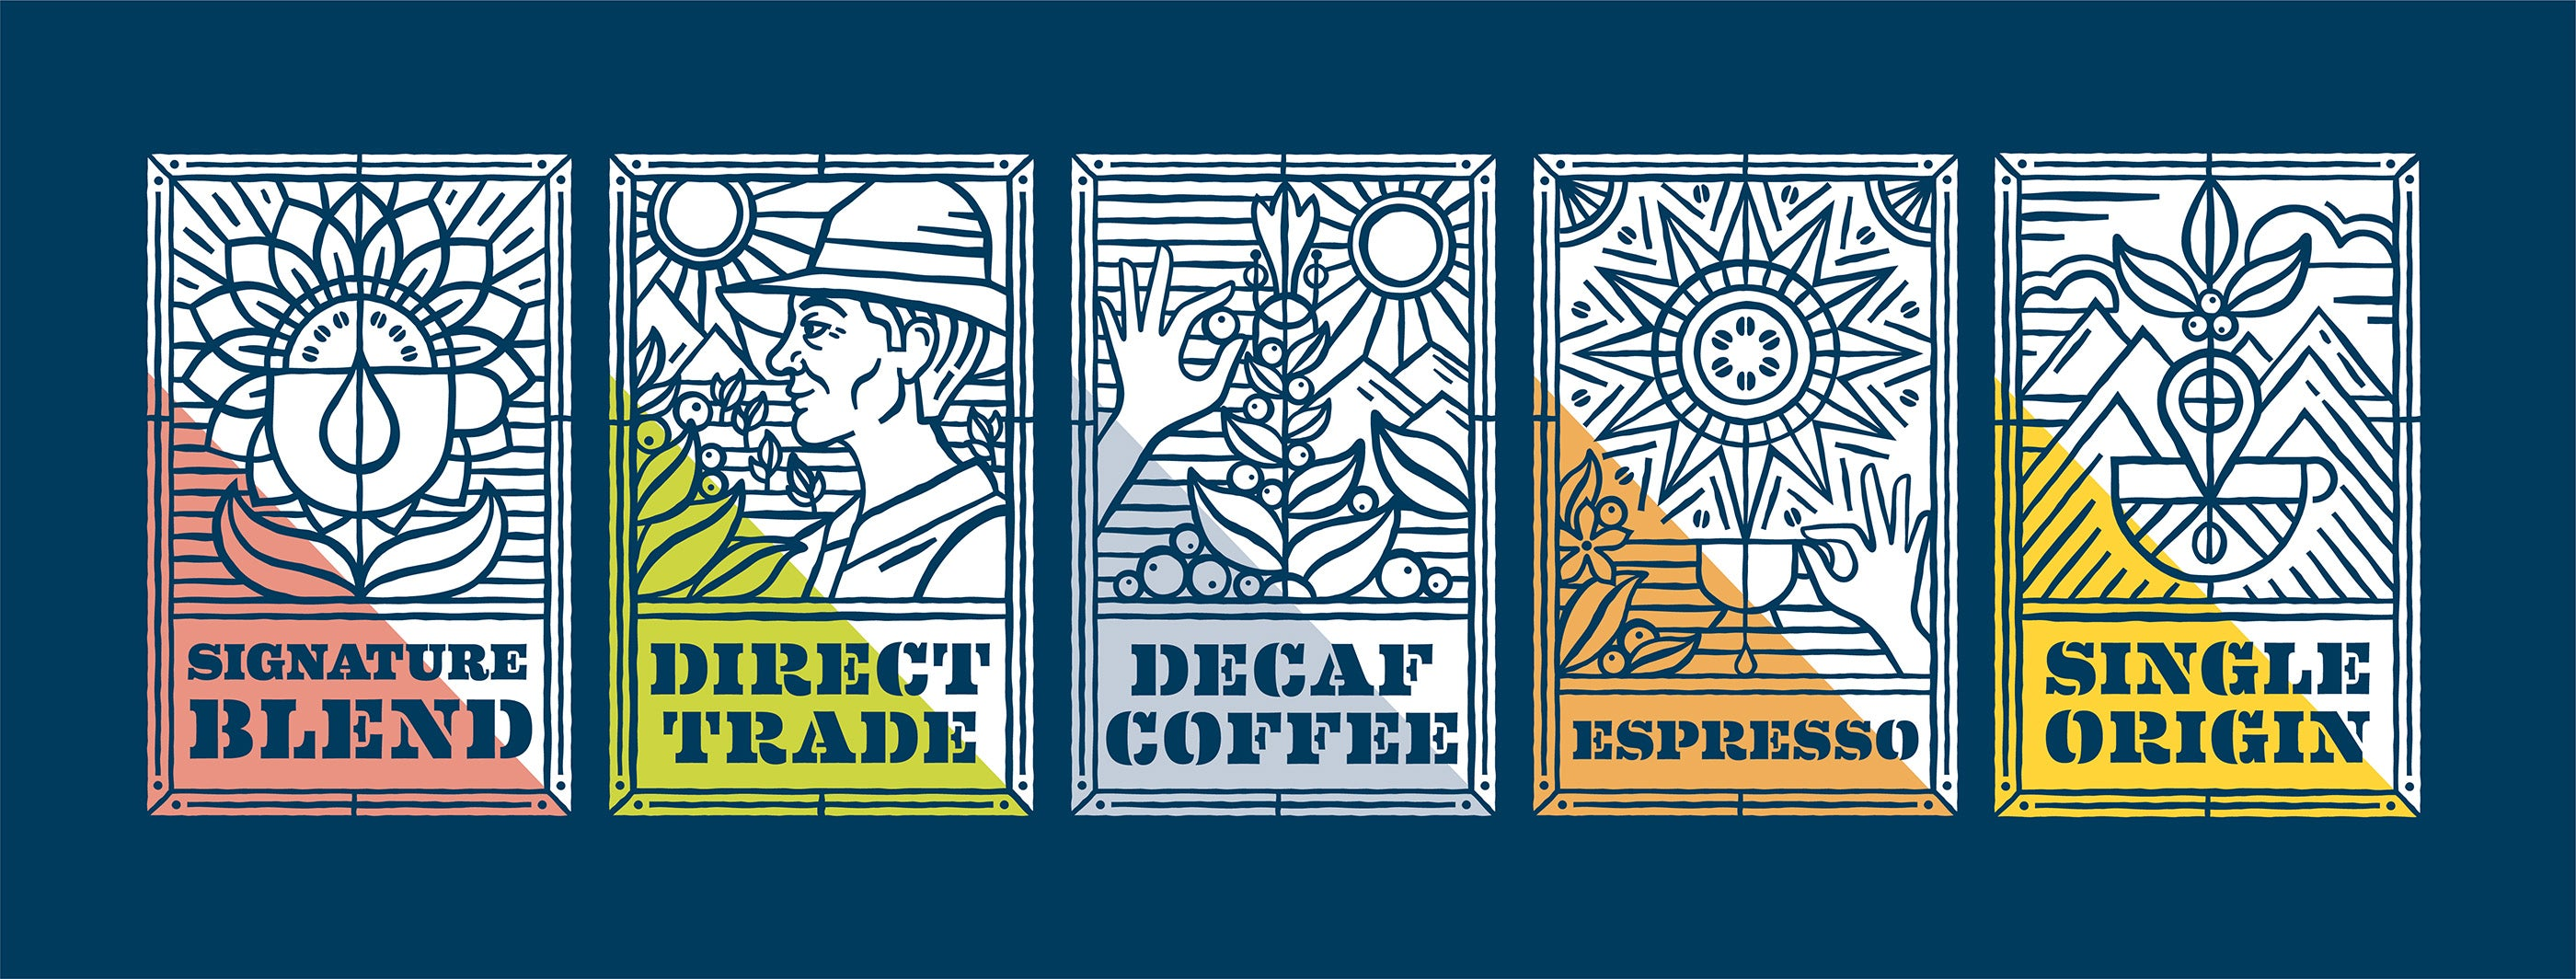 Carpenter Collective Label System for PT's Coffee Roasting Co.